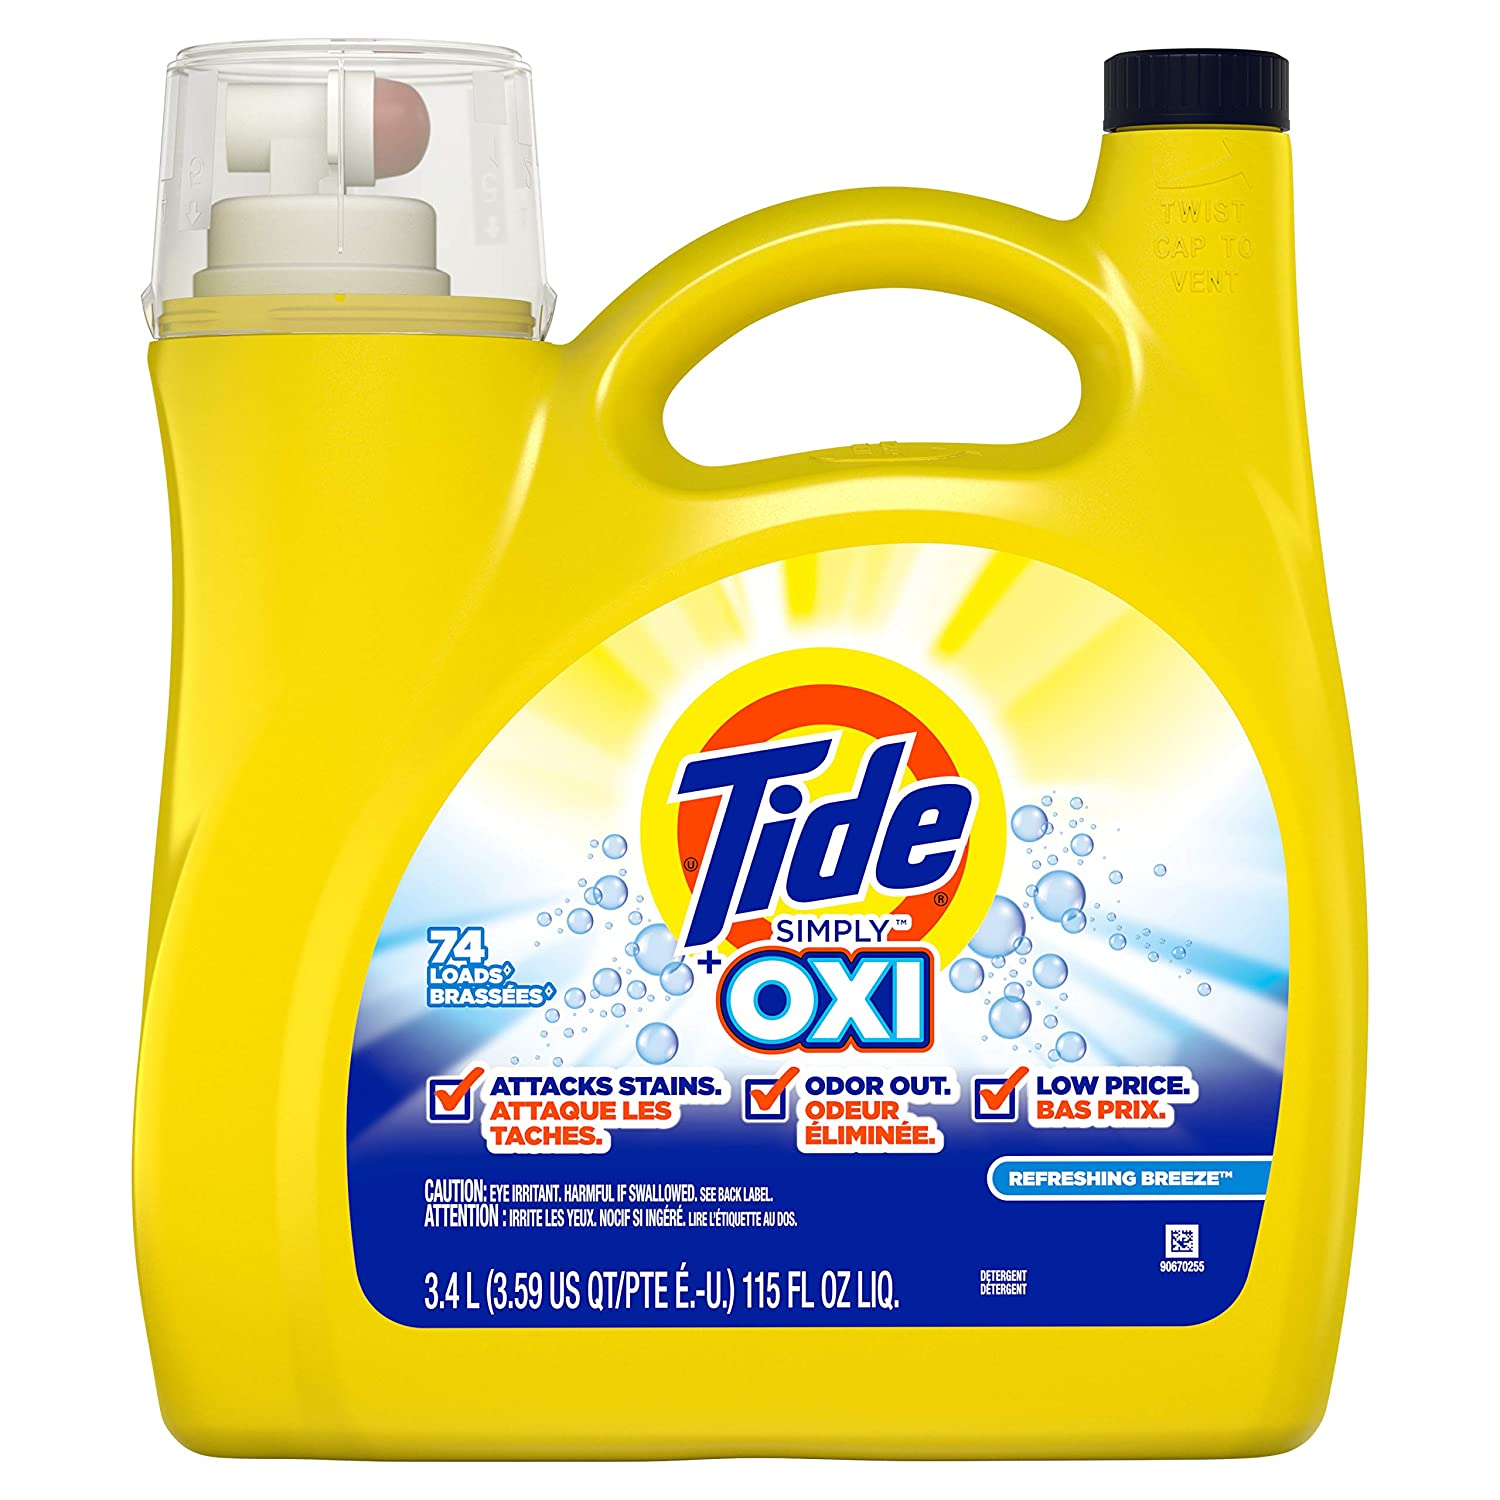 Tide Simply Oxi Liquid Laundry Detergent, Refreshing Breeze, 74 Loads 115 fl oz